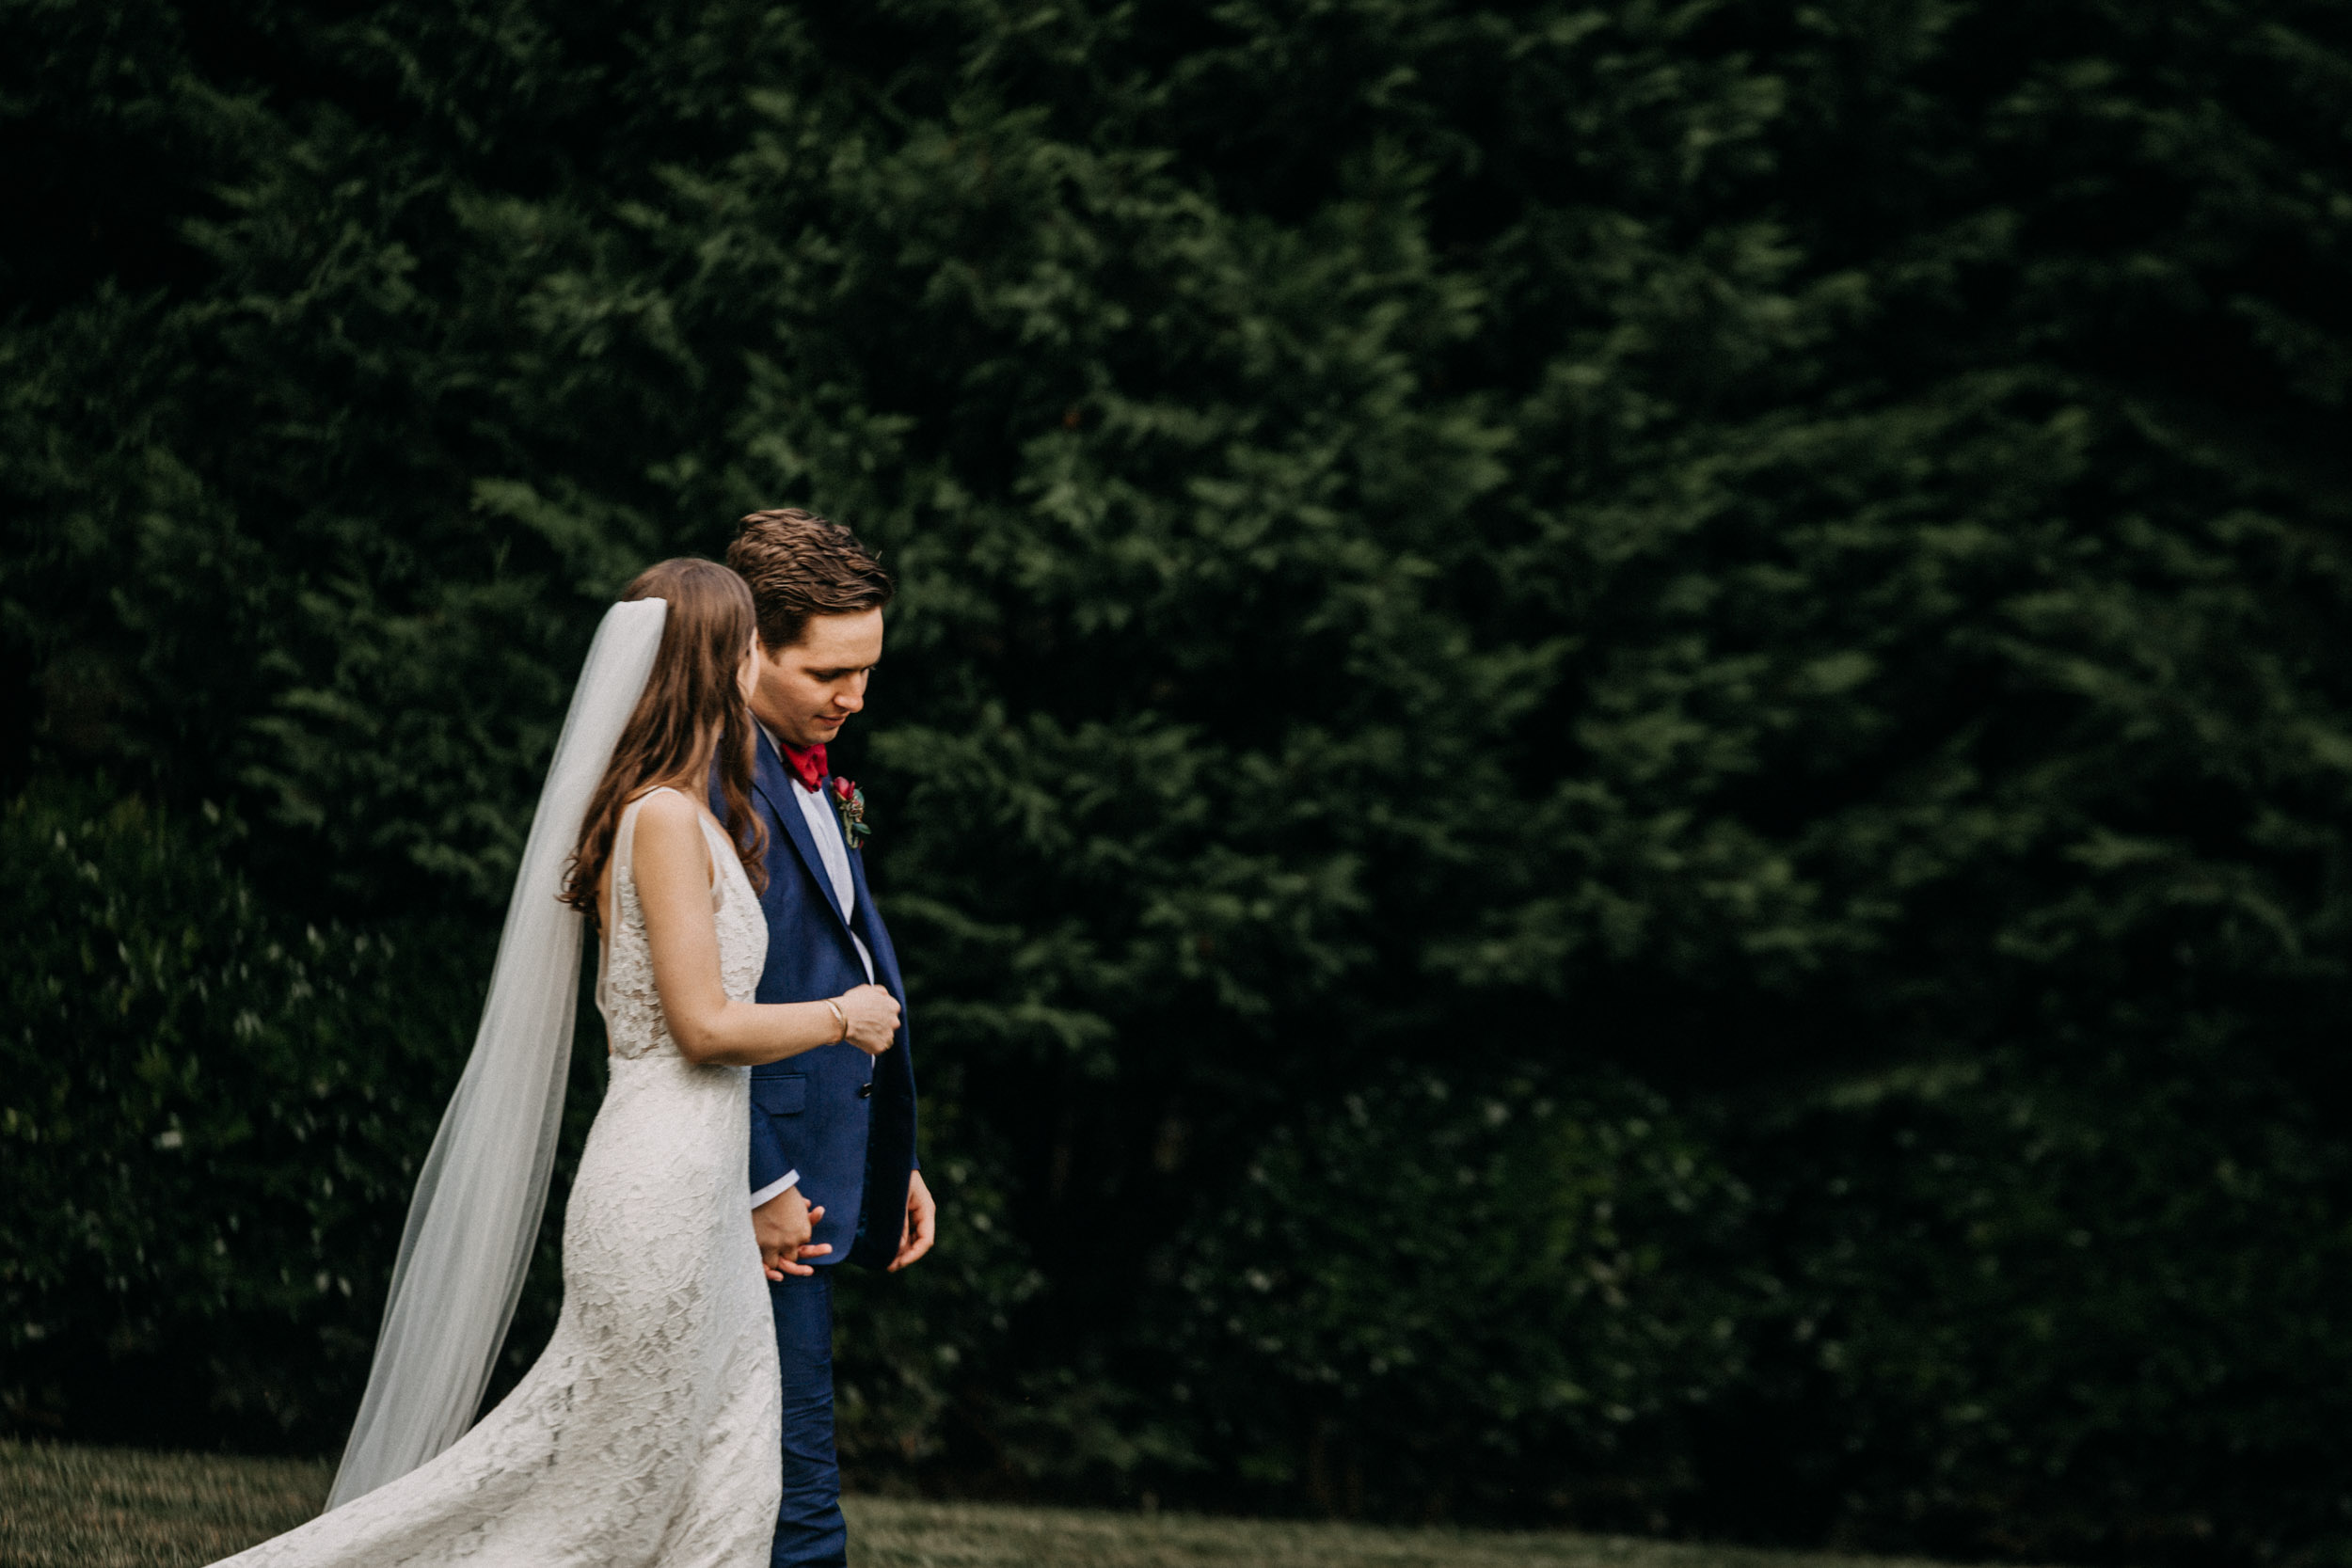 whitehead-manor-wedding-charlotte-nc-shellie-jarrett090.jpg